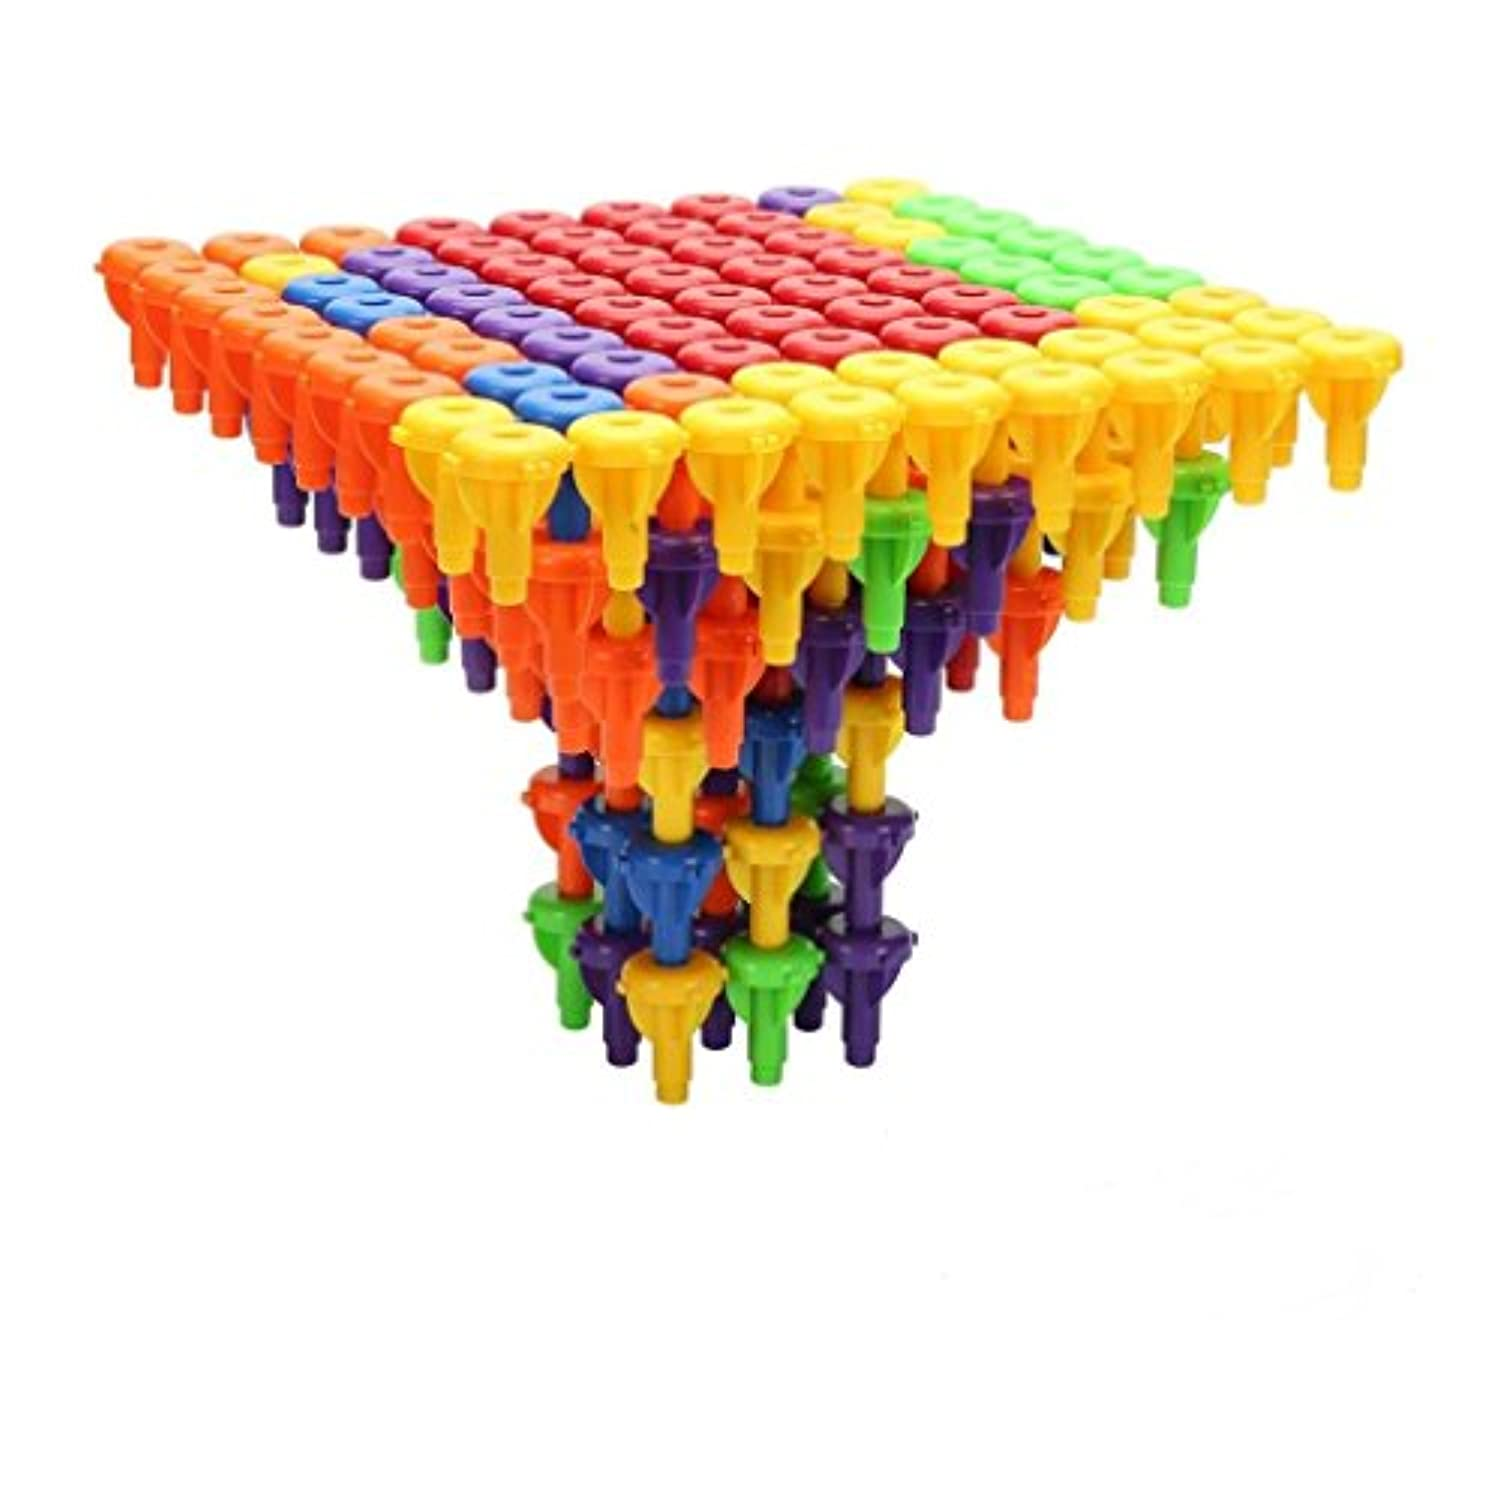 E-SCENERY 96Pcs Shape Sorter Pegs Board Stacking Building Blocks Toy, Building Tile Puzzle Set Preschool Colour Sorting Montessori Occupational Therapy Fine Motor Skills Toy for Kids